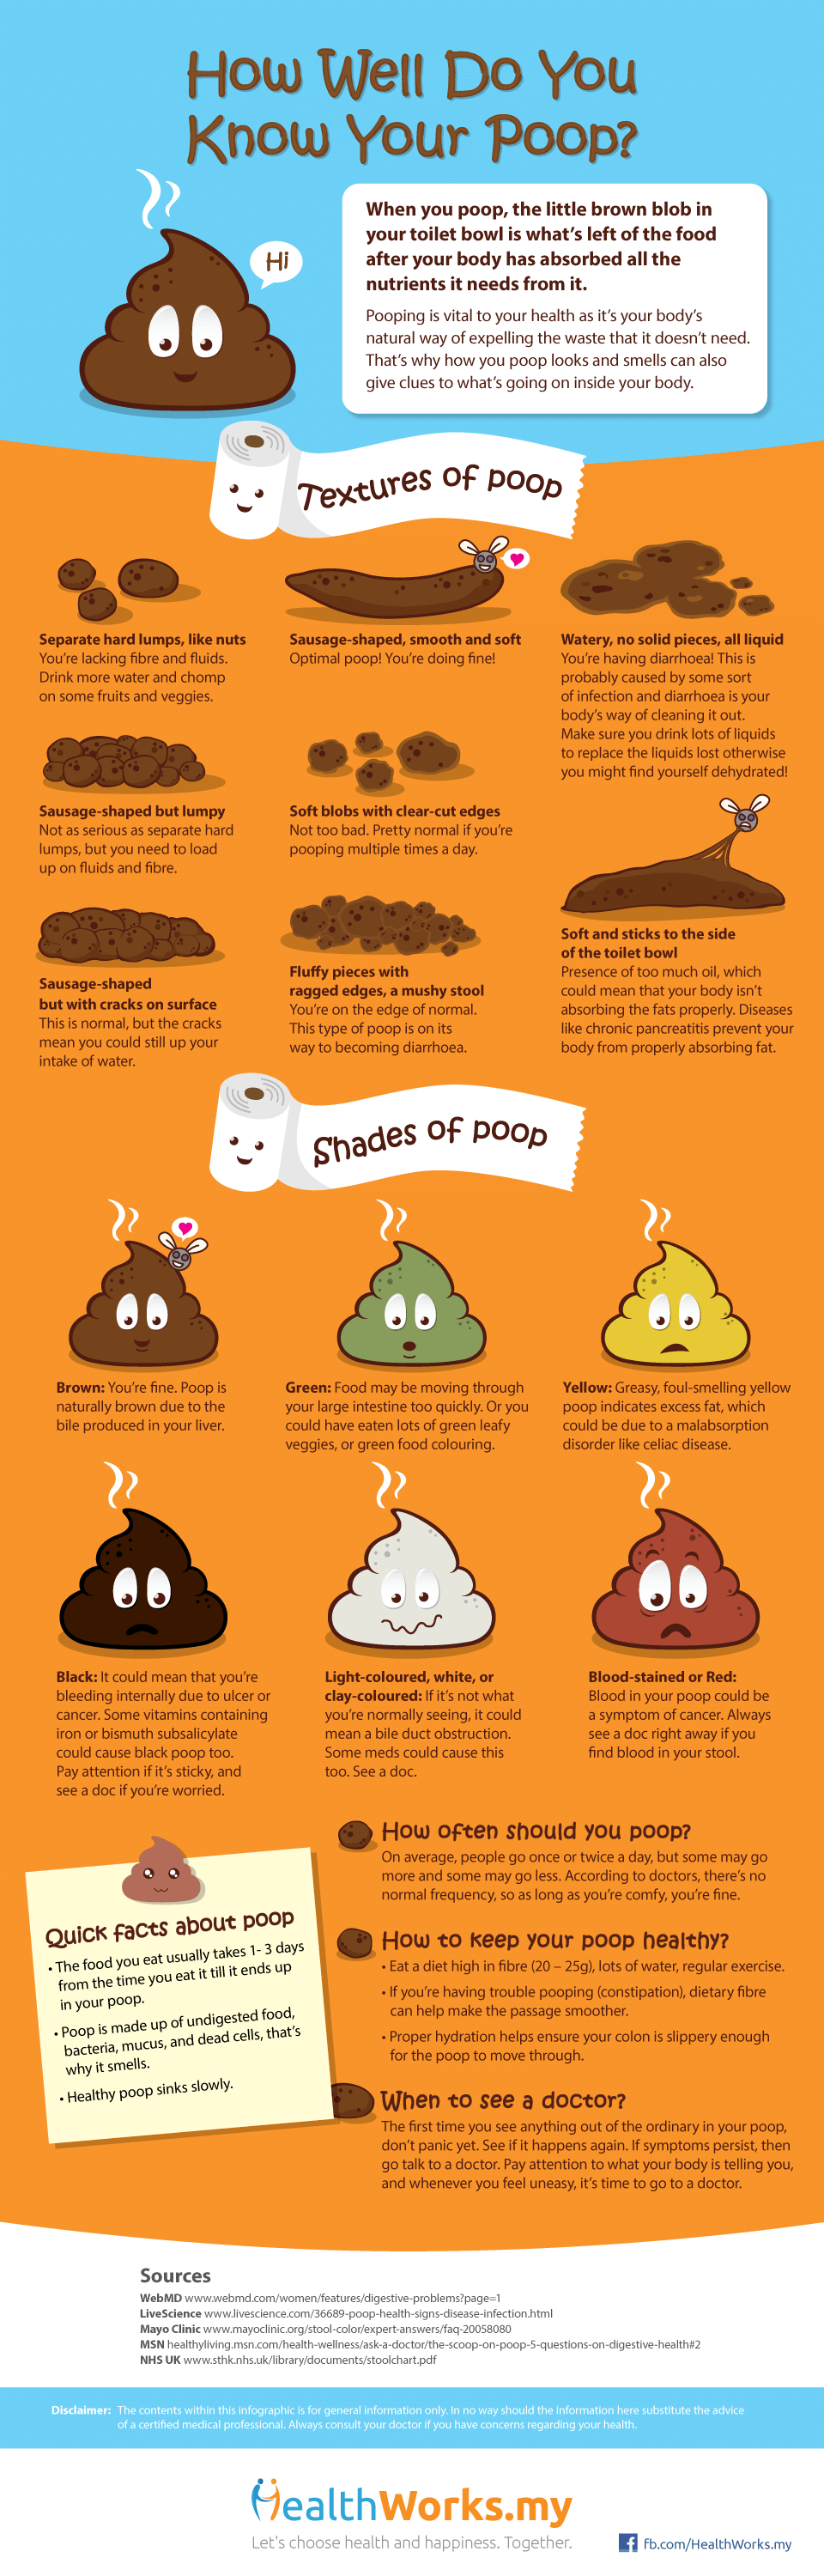 Poop Infographic - Family Friendly Version